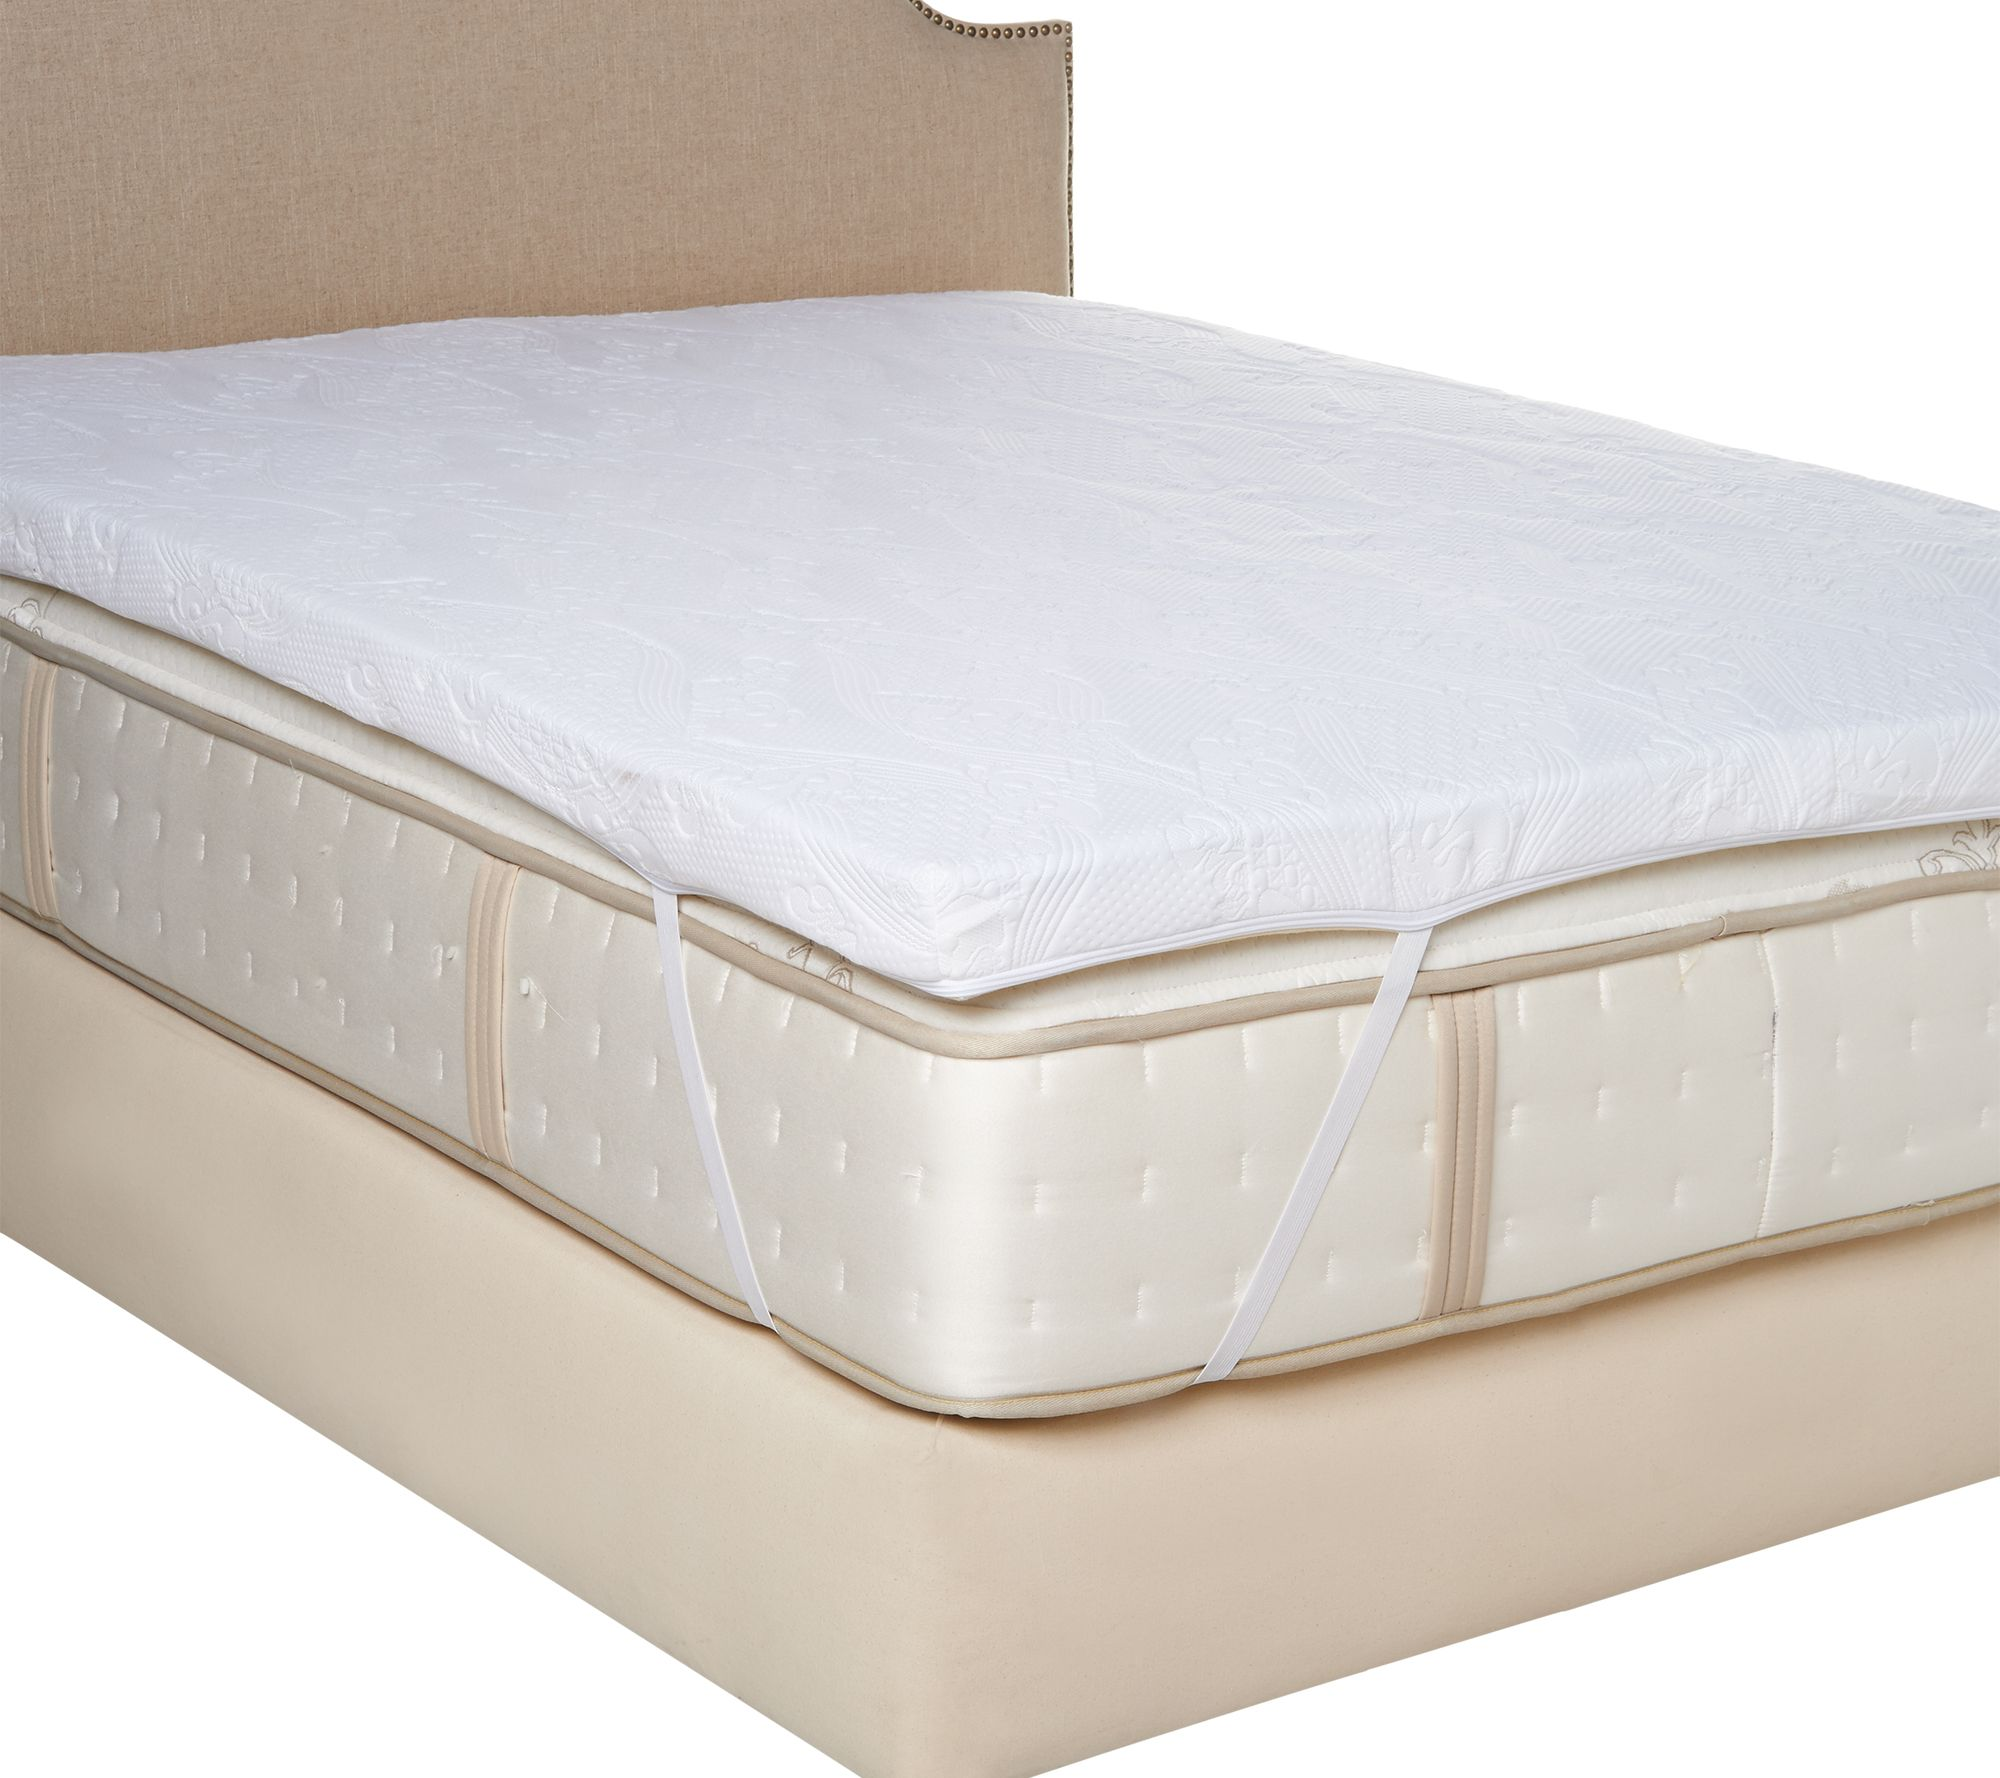 MyPillow Premium 3 QN Mattress Topper with Gel and